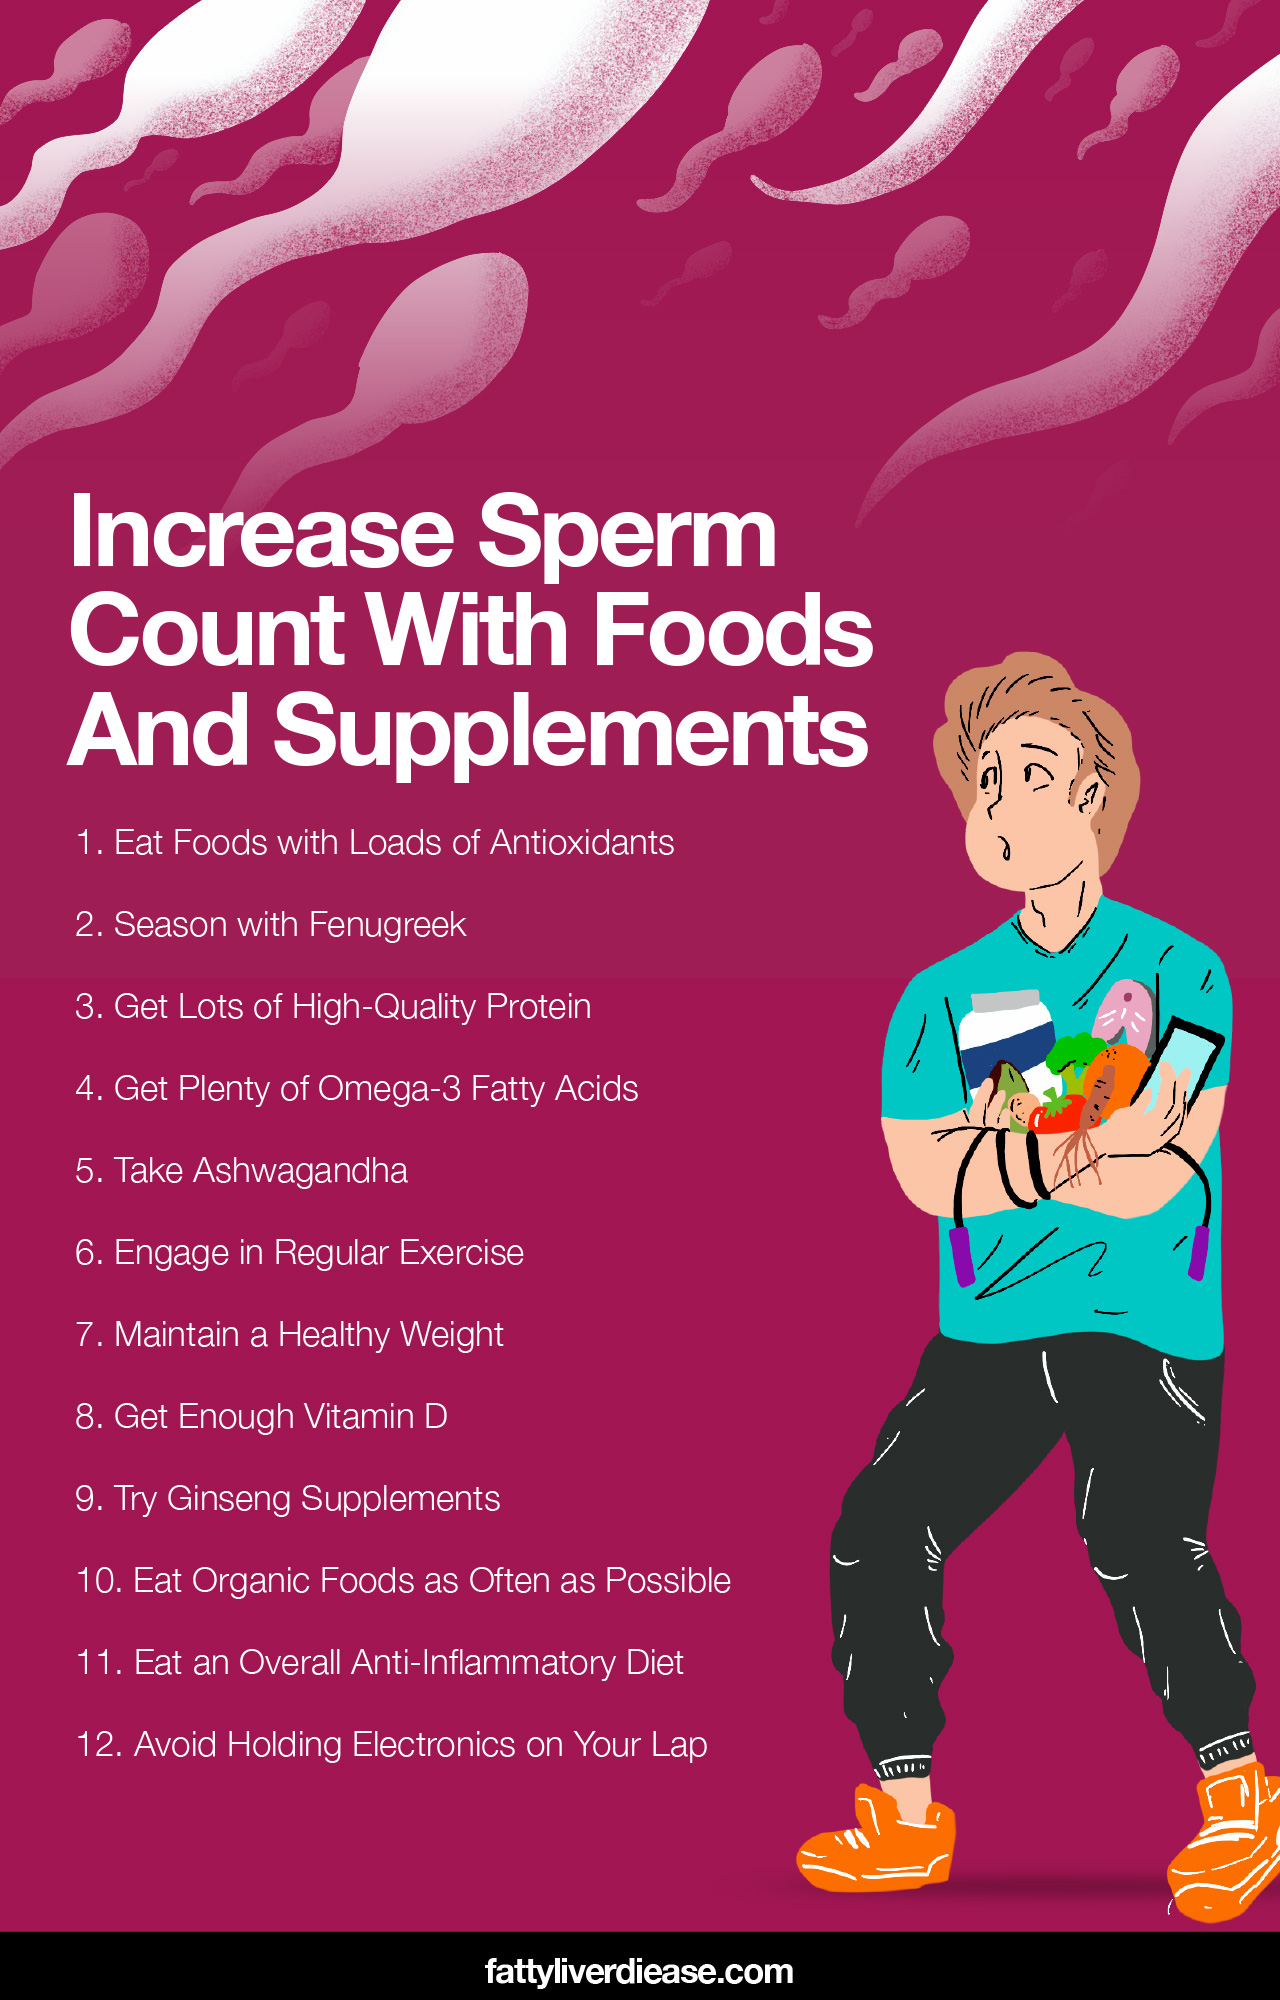 Increase Sperm Count With Foods And Supplements